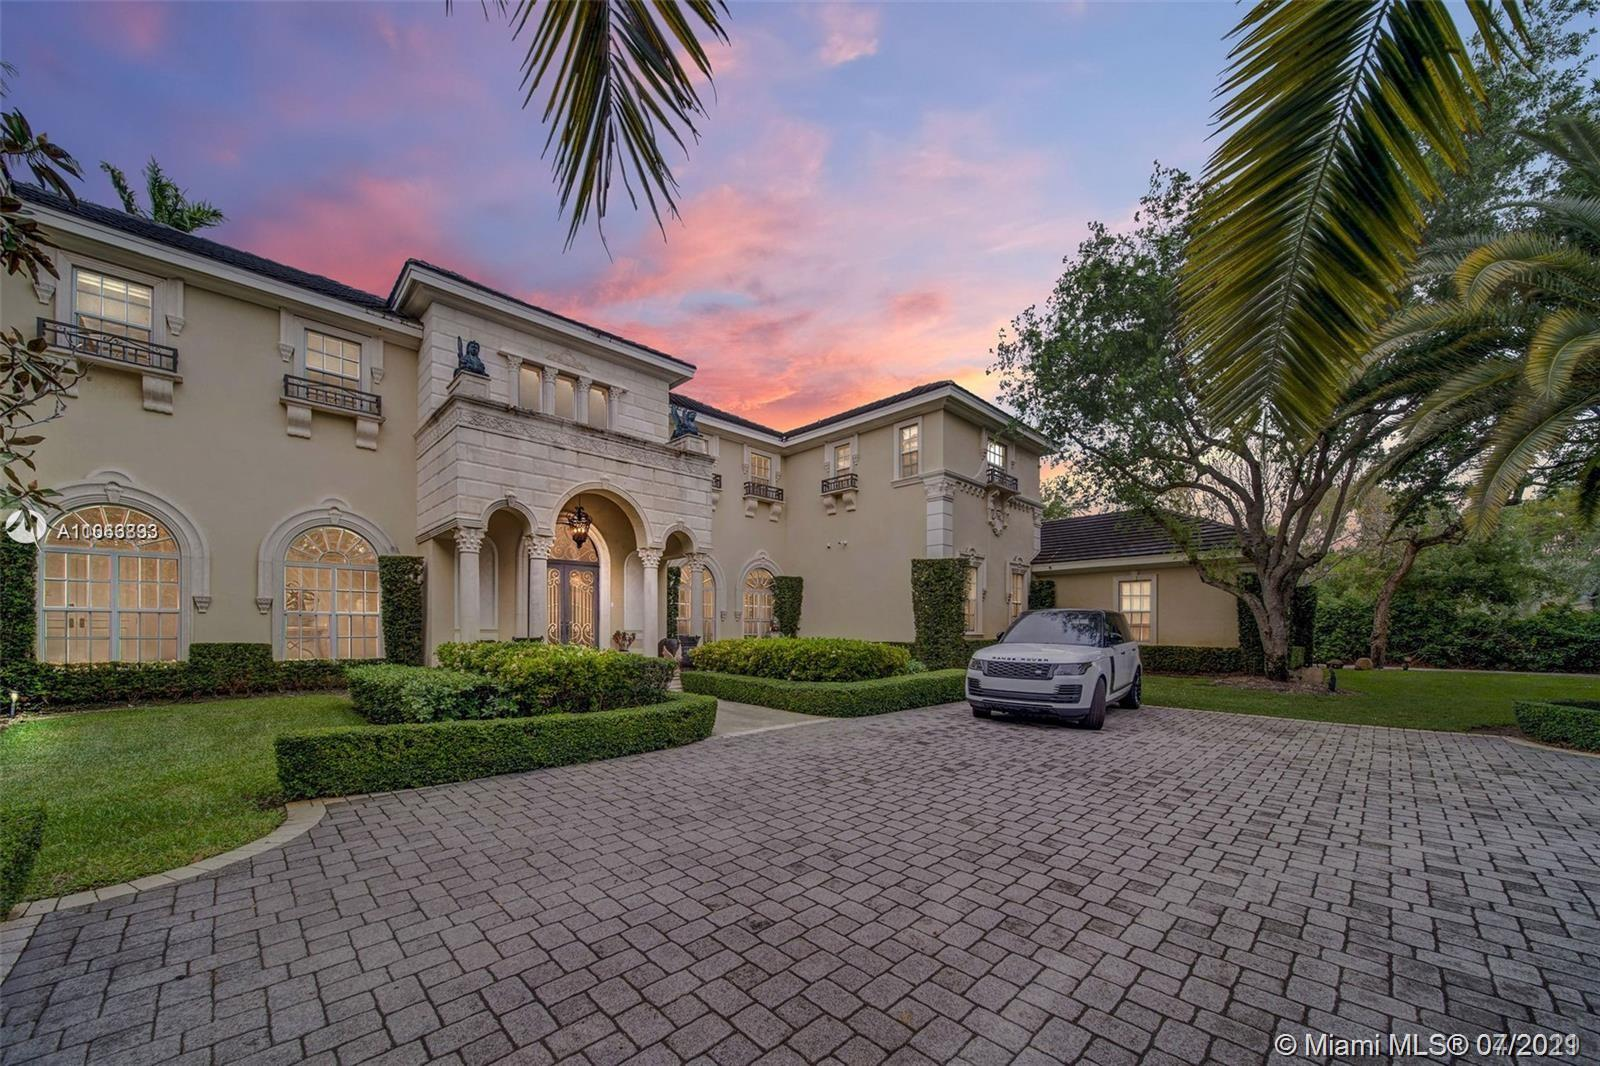 Hidden masterpiece in North Pinecrest! Nestled on a quiet street, this estate boasts exquisite designs & features over 9,000 sqft of glorious living space. Highest quality finishes include imported marble, commercial elevator, impact windows/doors, full Home Generator, theater & soaring ceilings. Enjoy natural light that spills in from the windows enhancing the beautiful architecture & arched halls. Ideal floor plan including open kitchen to an oversized family room, 1st floor junior master suite, in-law/maid quarter plus Rosewood adorned study. Upstairs Master suite is tucked away from all the other suites for ultimate privacy. The remaining 4 suites are greeted via a spacious loft.  Gated, breath-taking grounds & pool/patio area including a Versace inspired pool design.  Original owner!